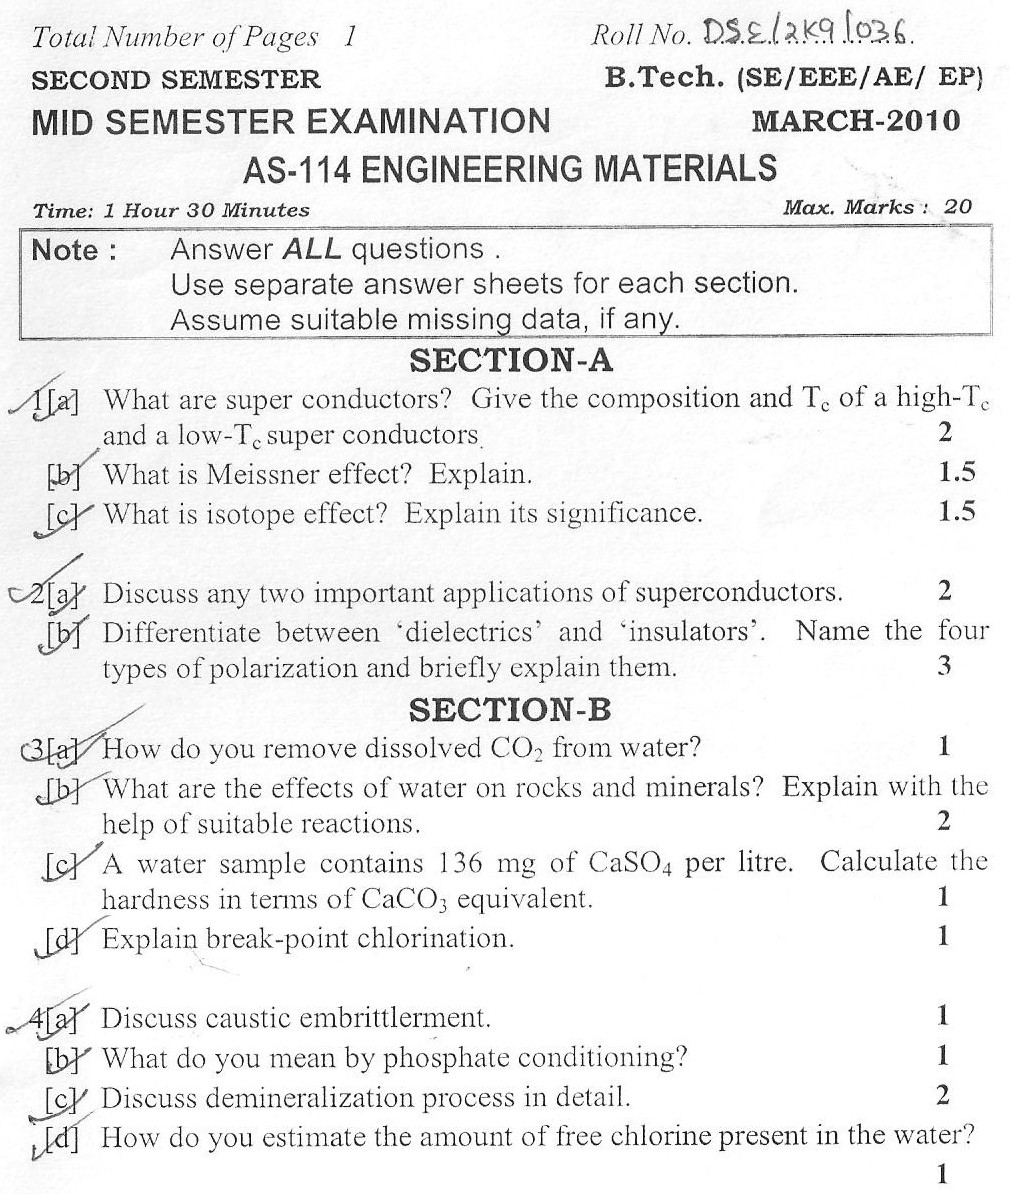 DTU Question Papers 2010 – 2 Semester - Mid Sem - AS-114